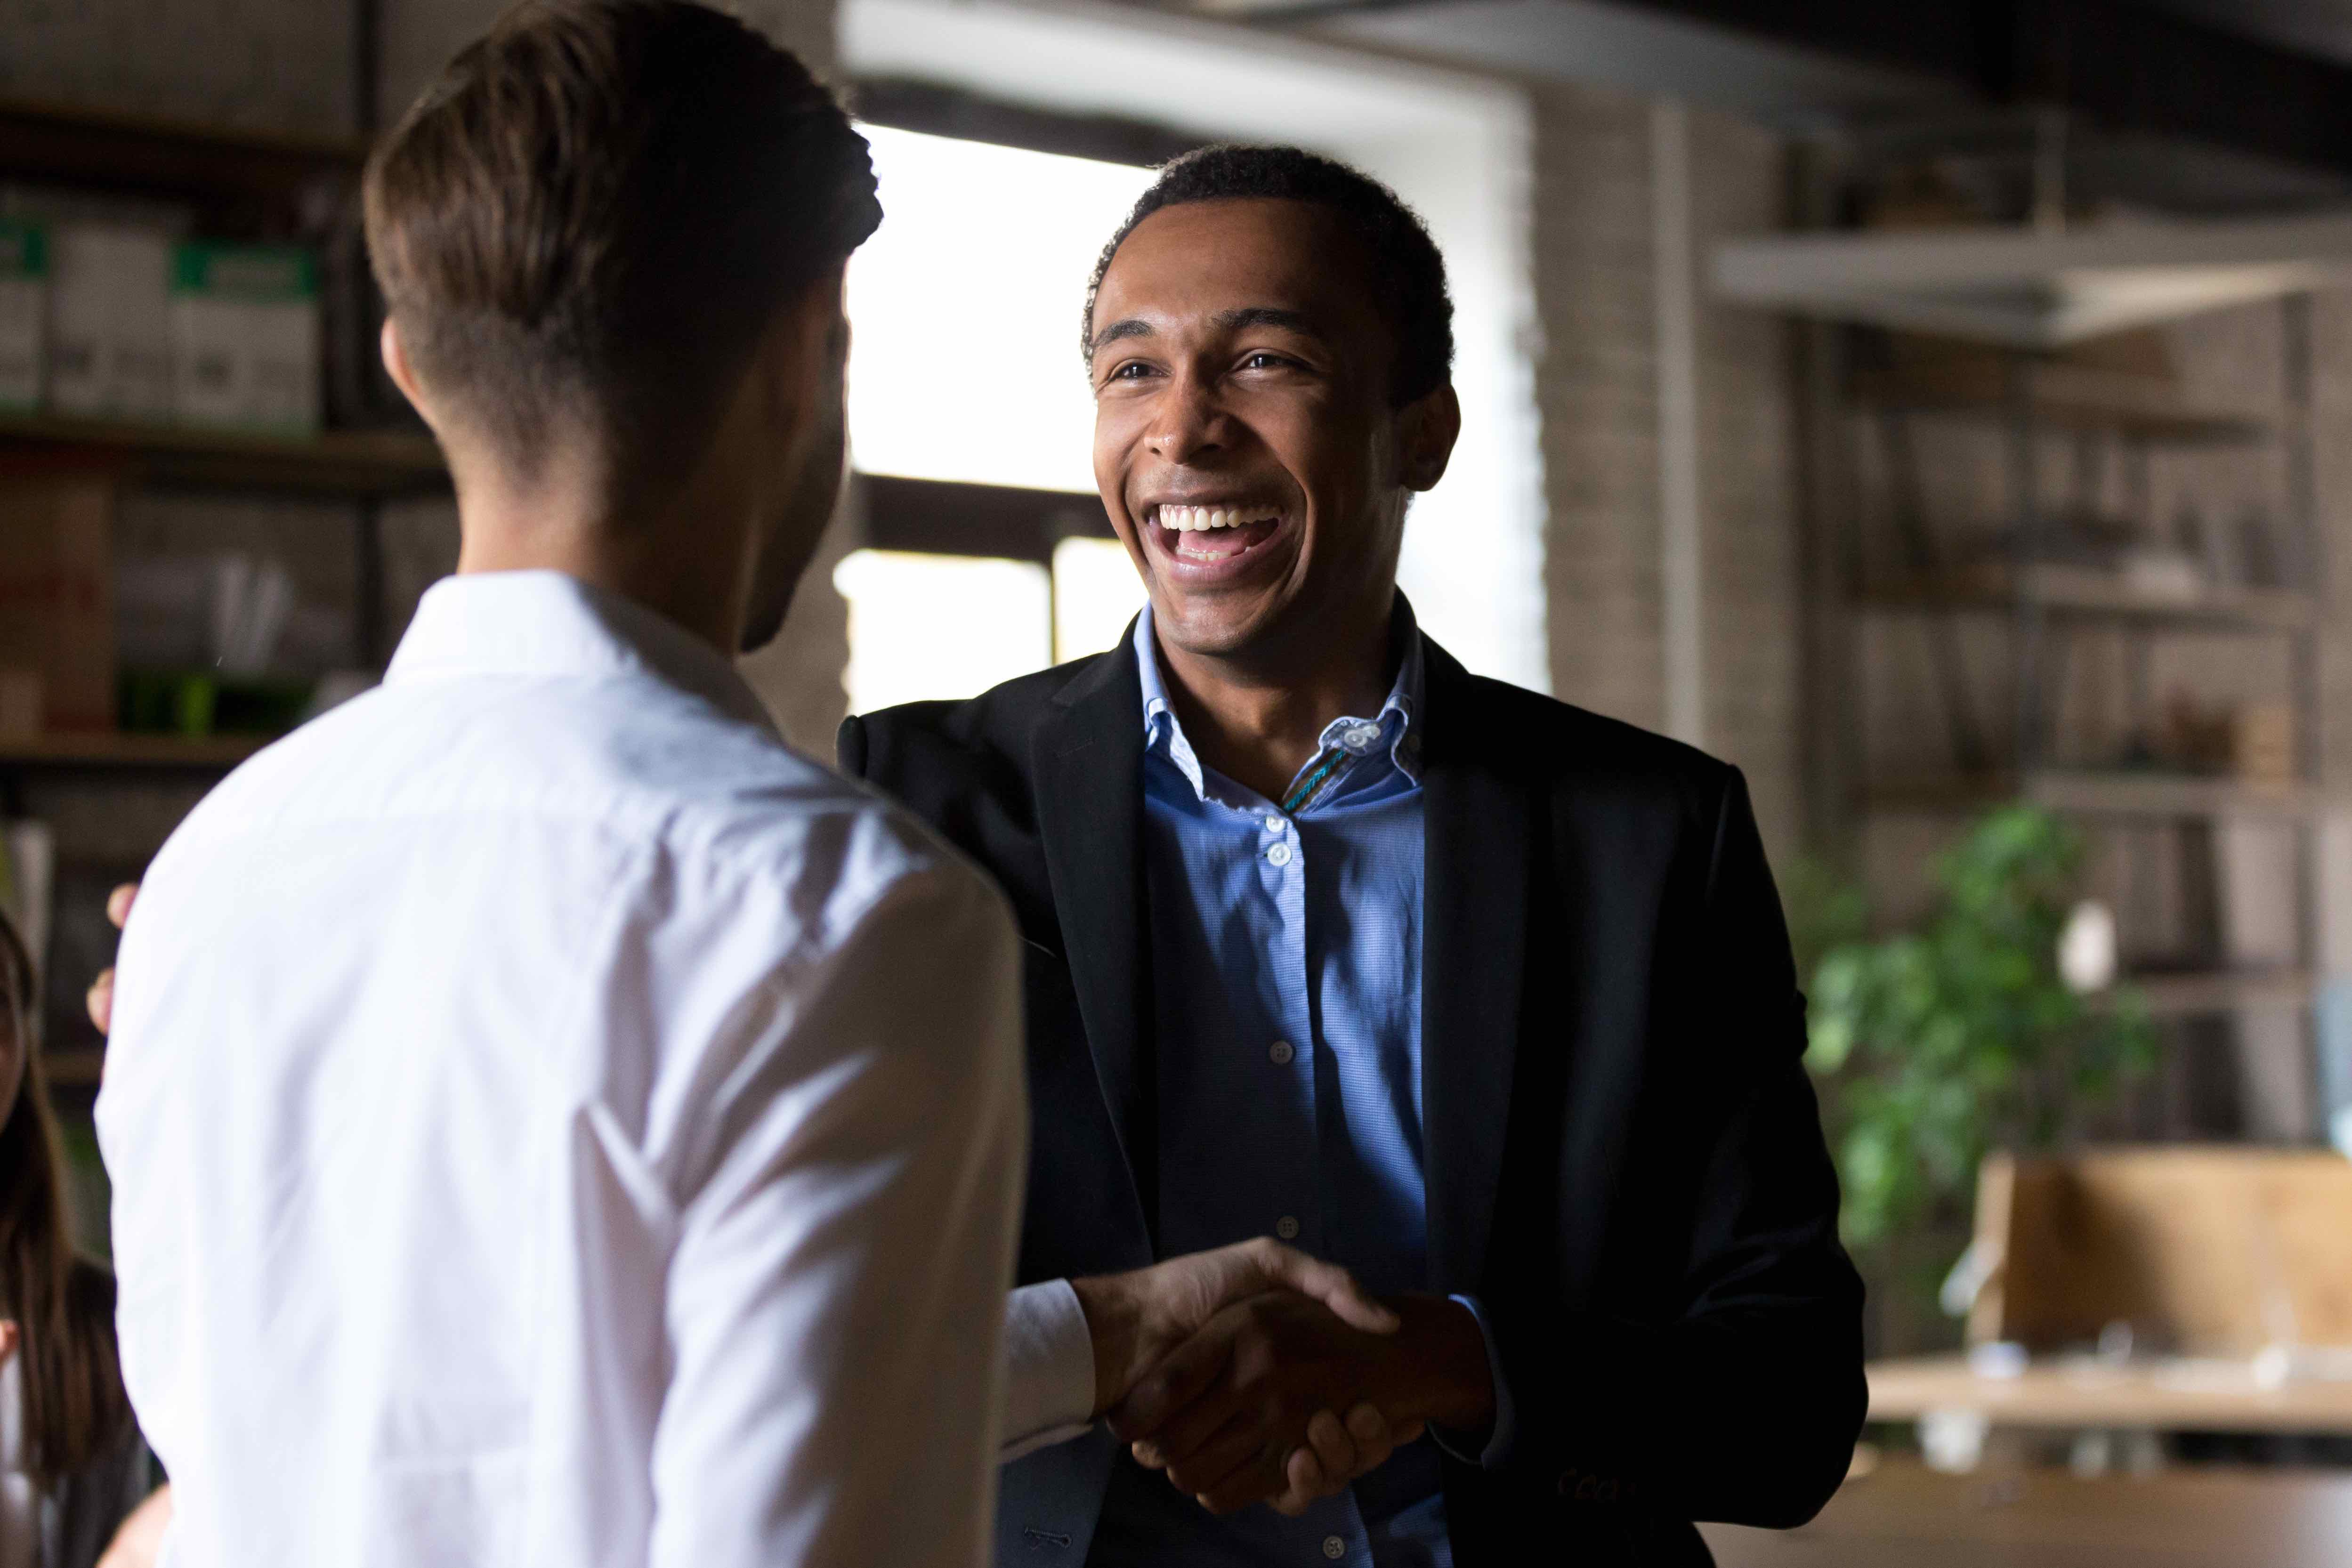 Account manager shaking hands with client